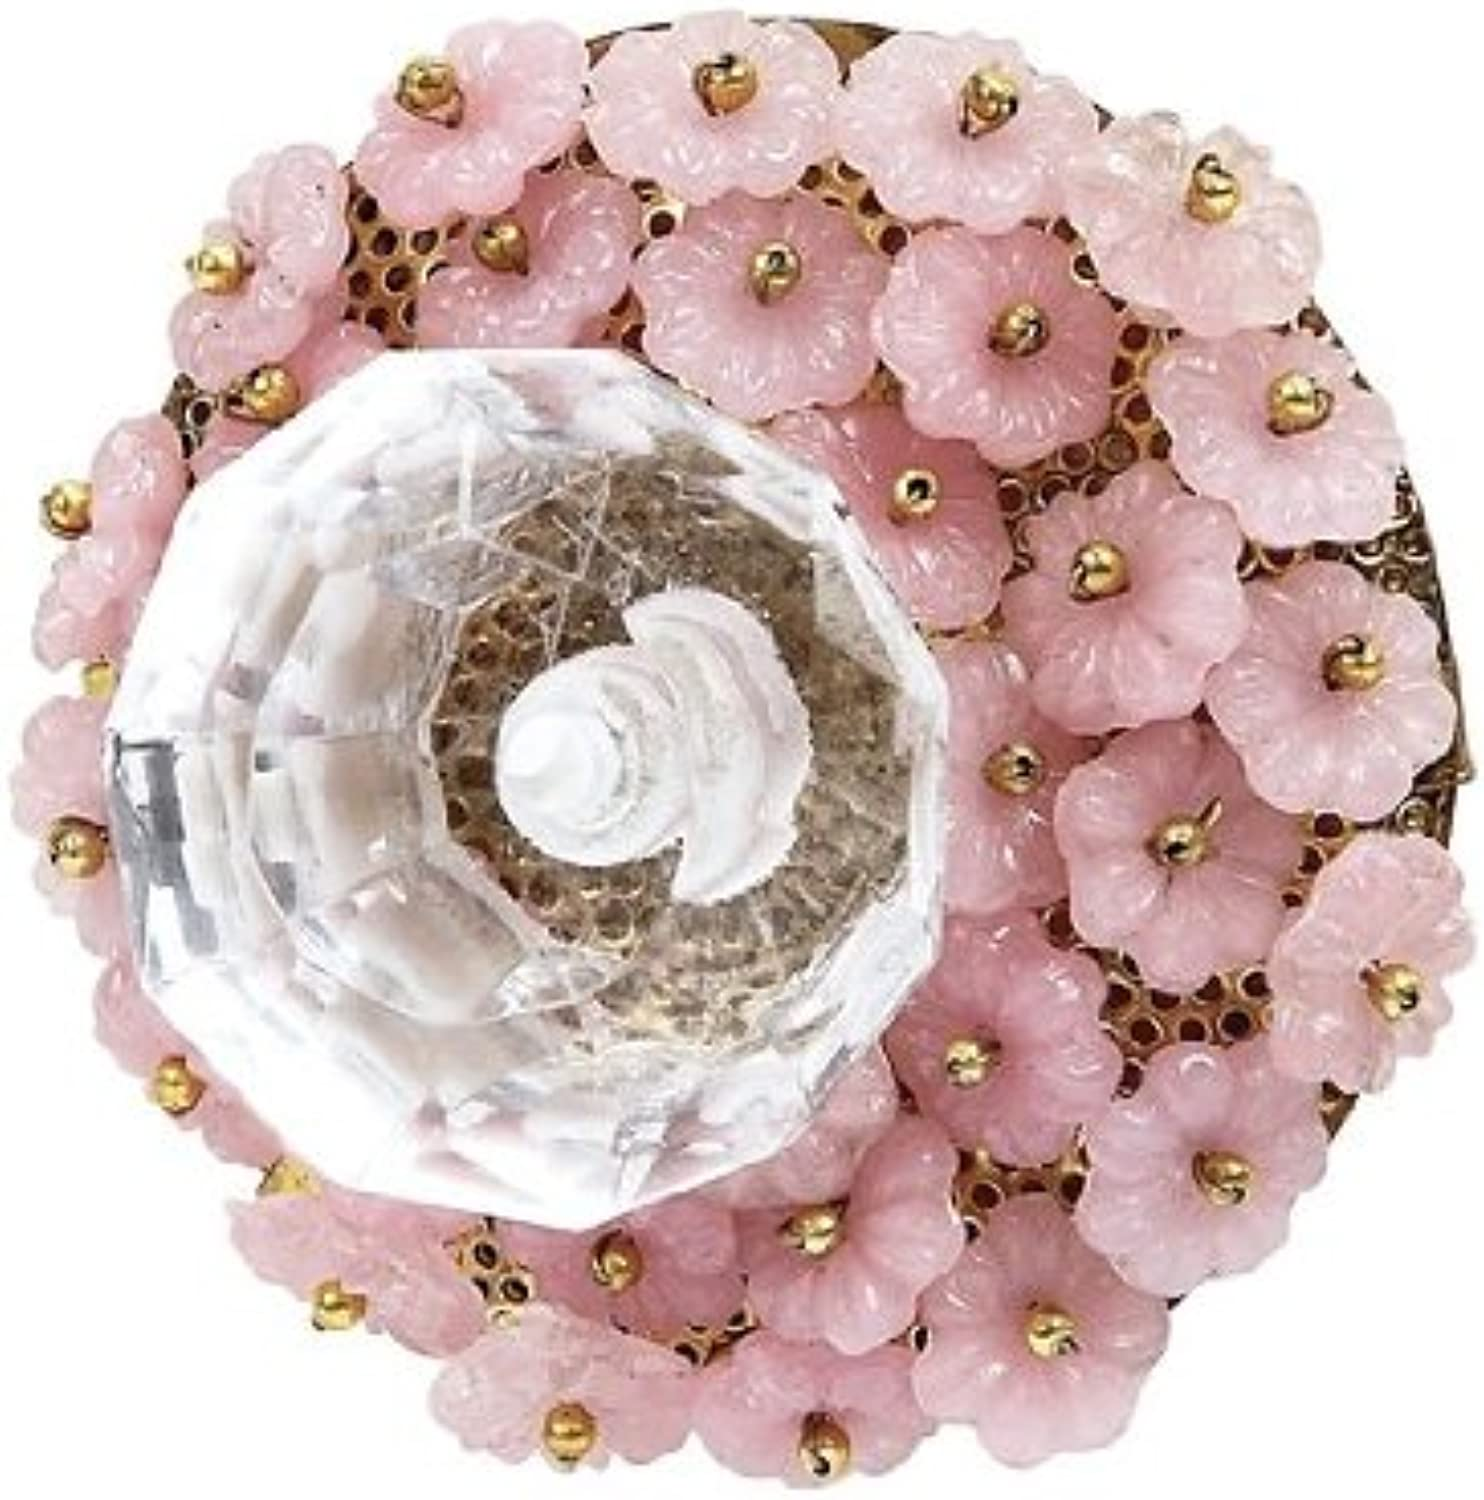 Jubilee Collection 155003 Flower Beads Glass Center Knob, Opaque Pink